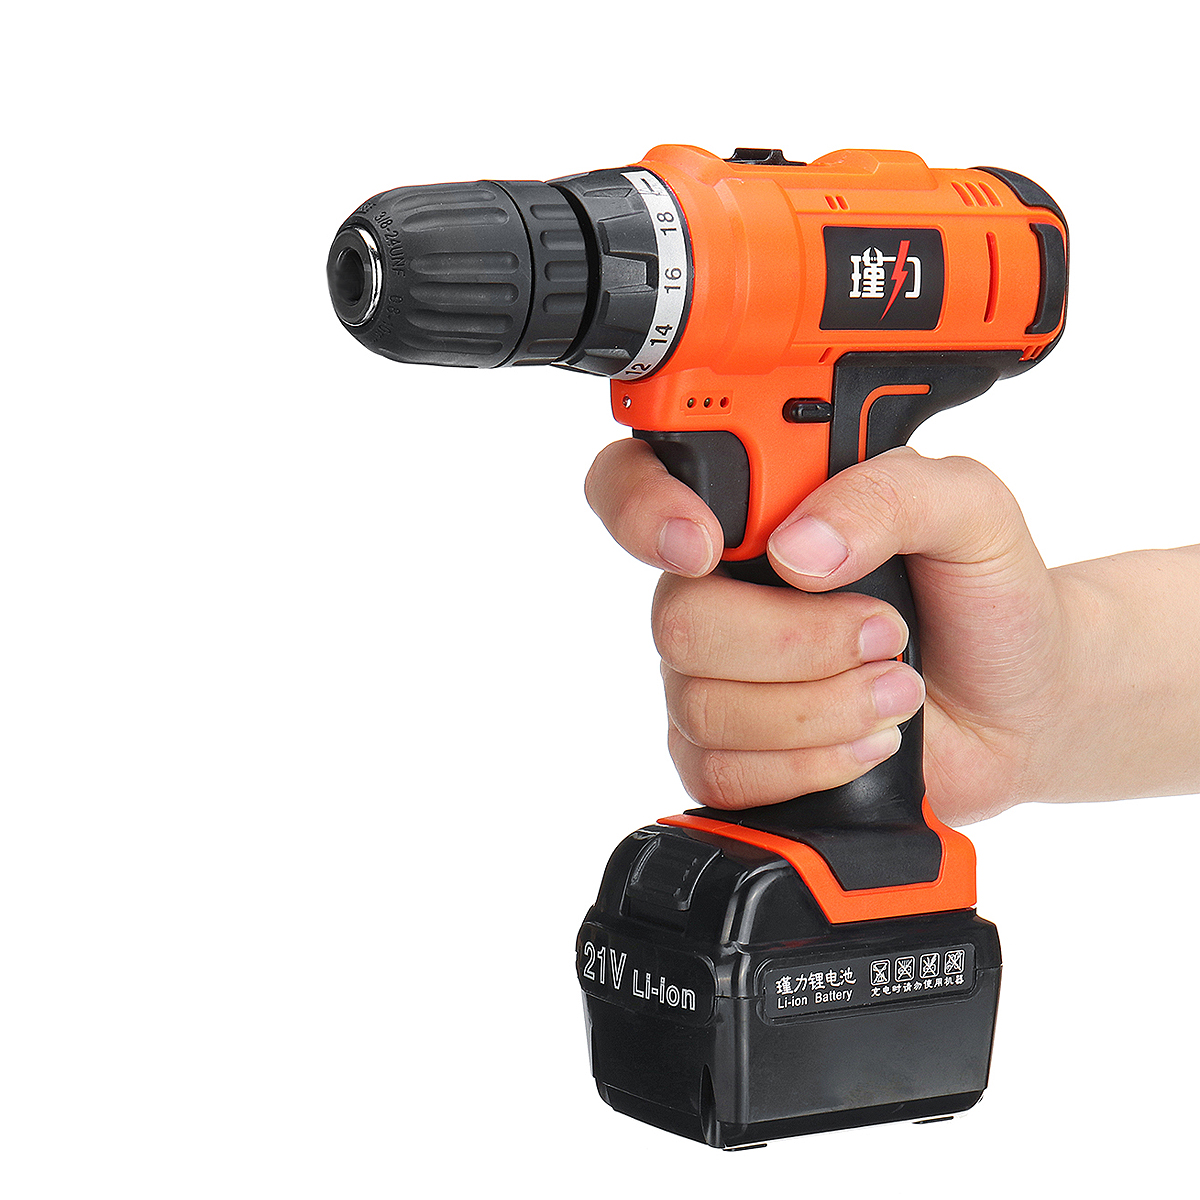 21V LED Electric Screwdriver Rechargeable Cordless Power Hammer Drill Driver Dual Speed Reverse